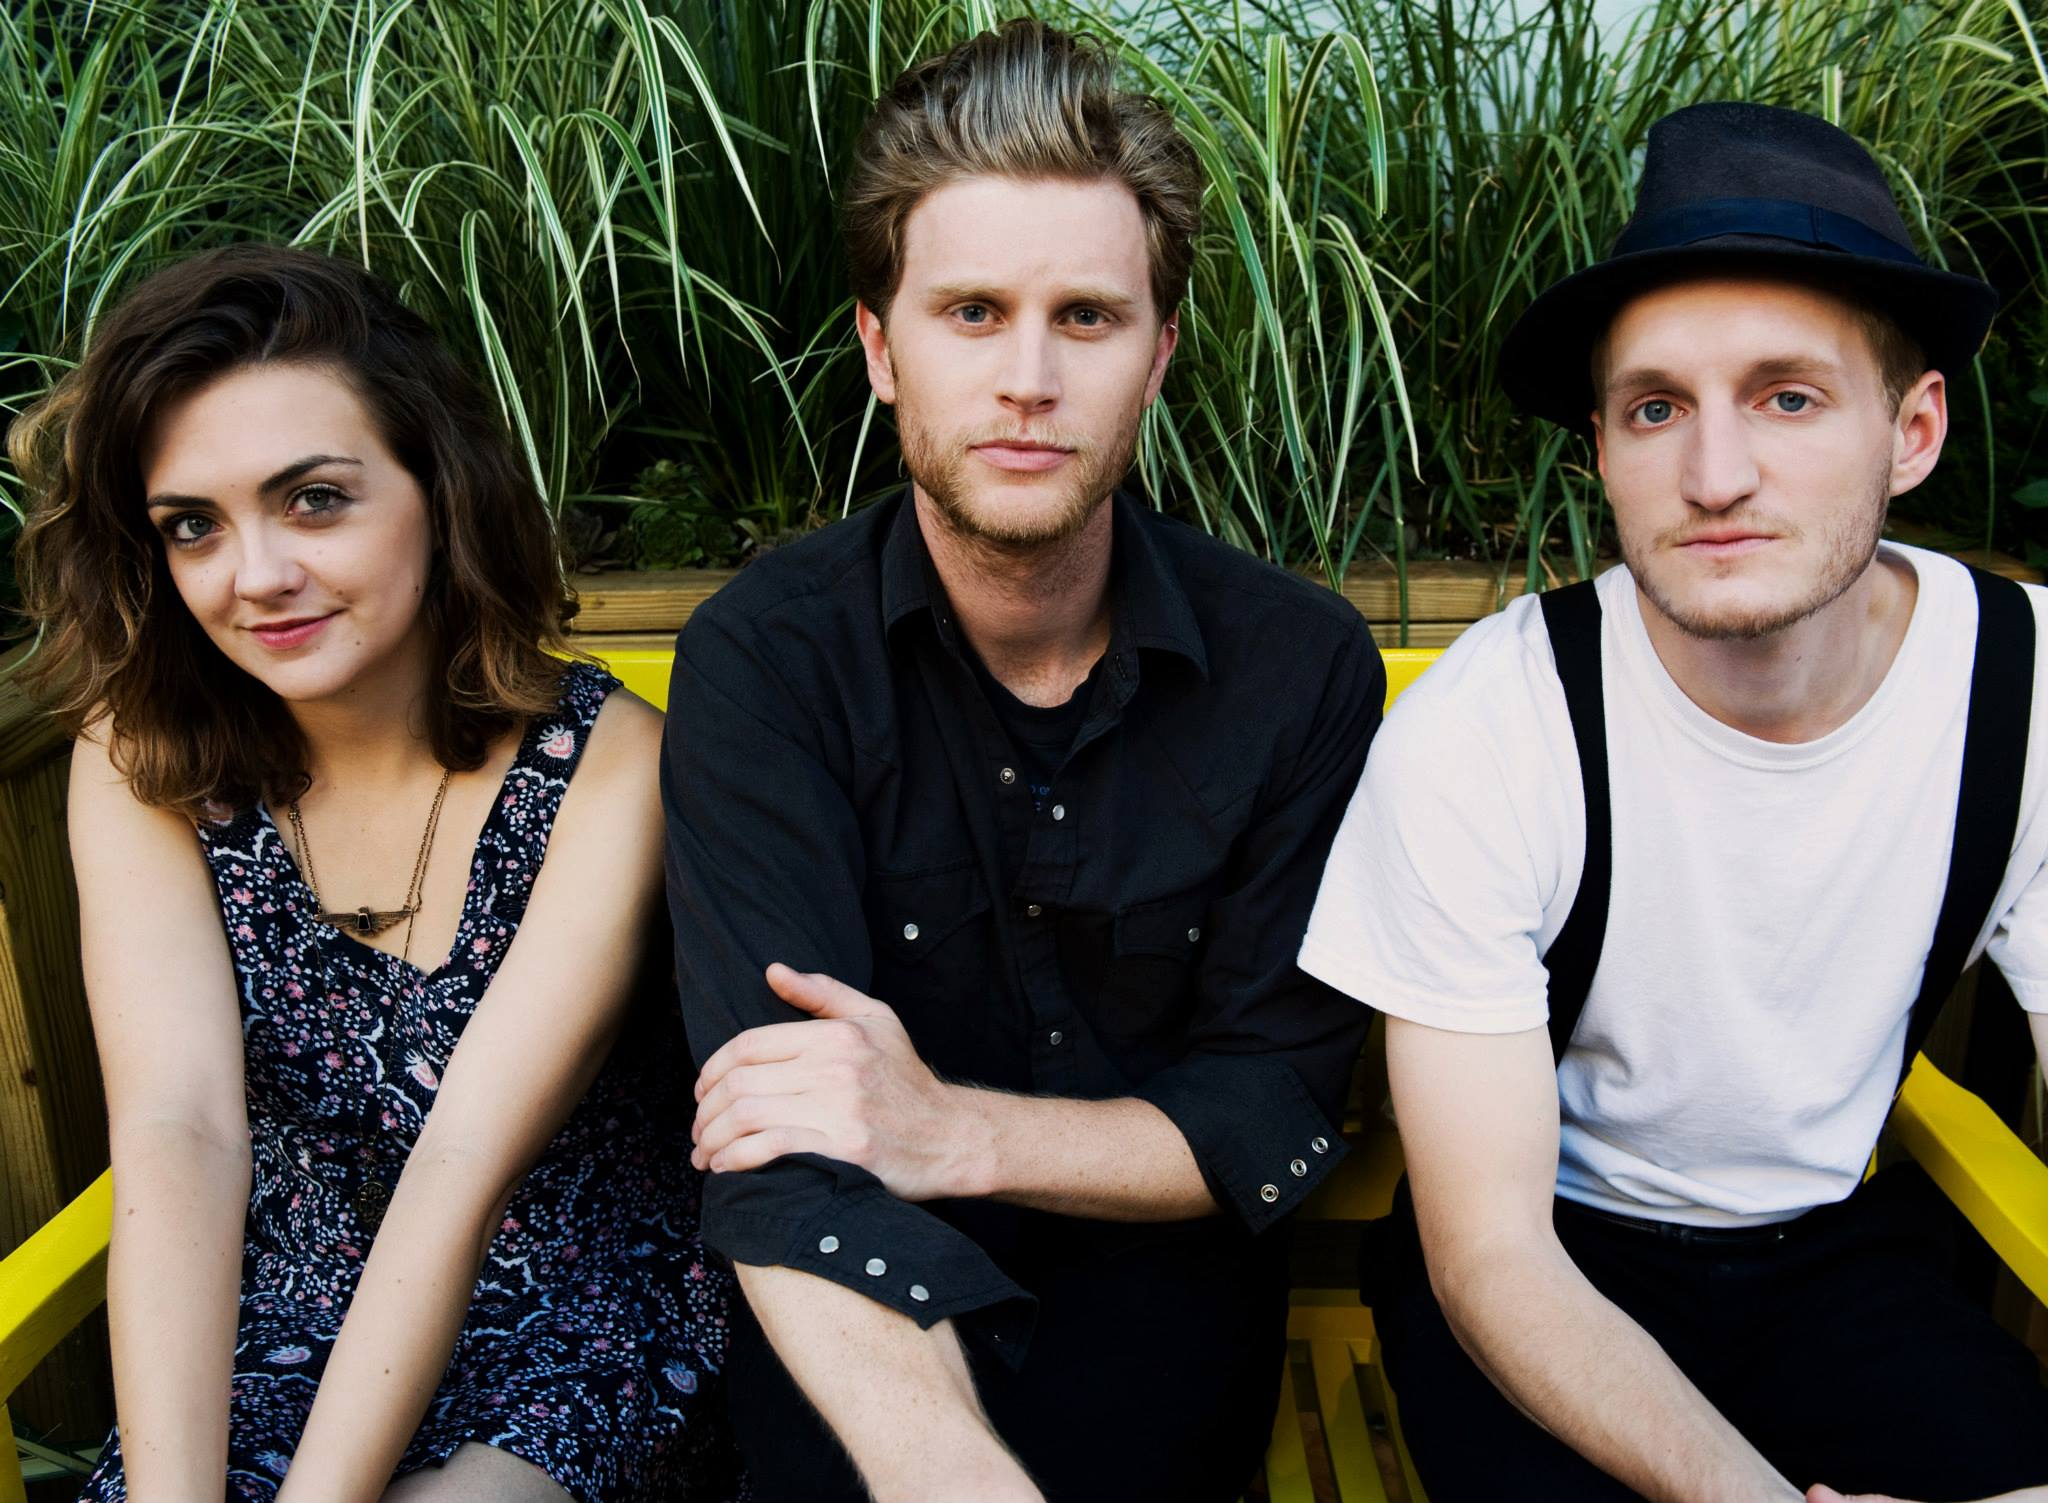 The Lumineers - iTunes Festival 2013 - LIVE - Roundhouse - London - Hack4Life